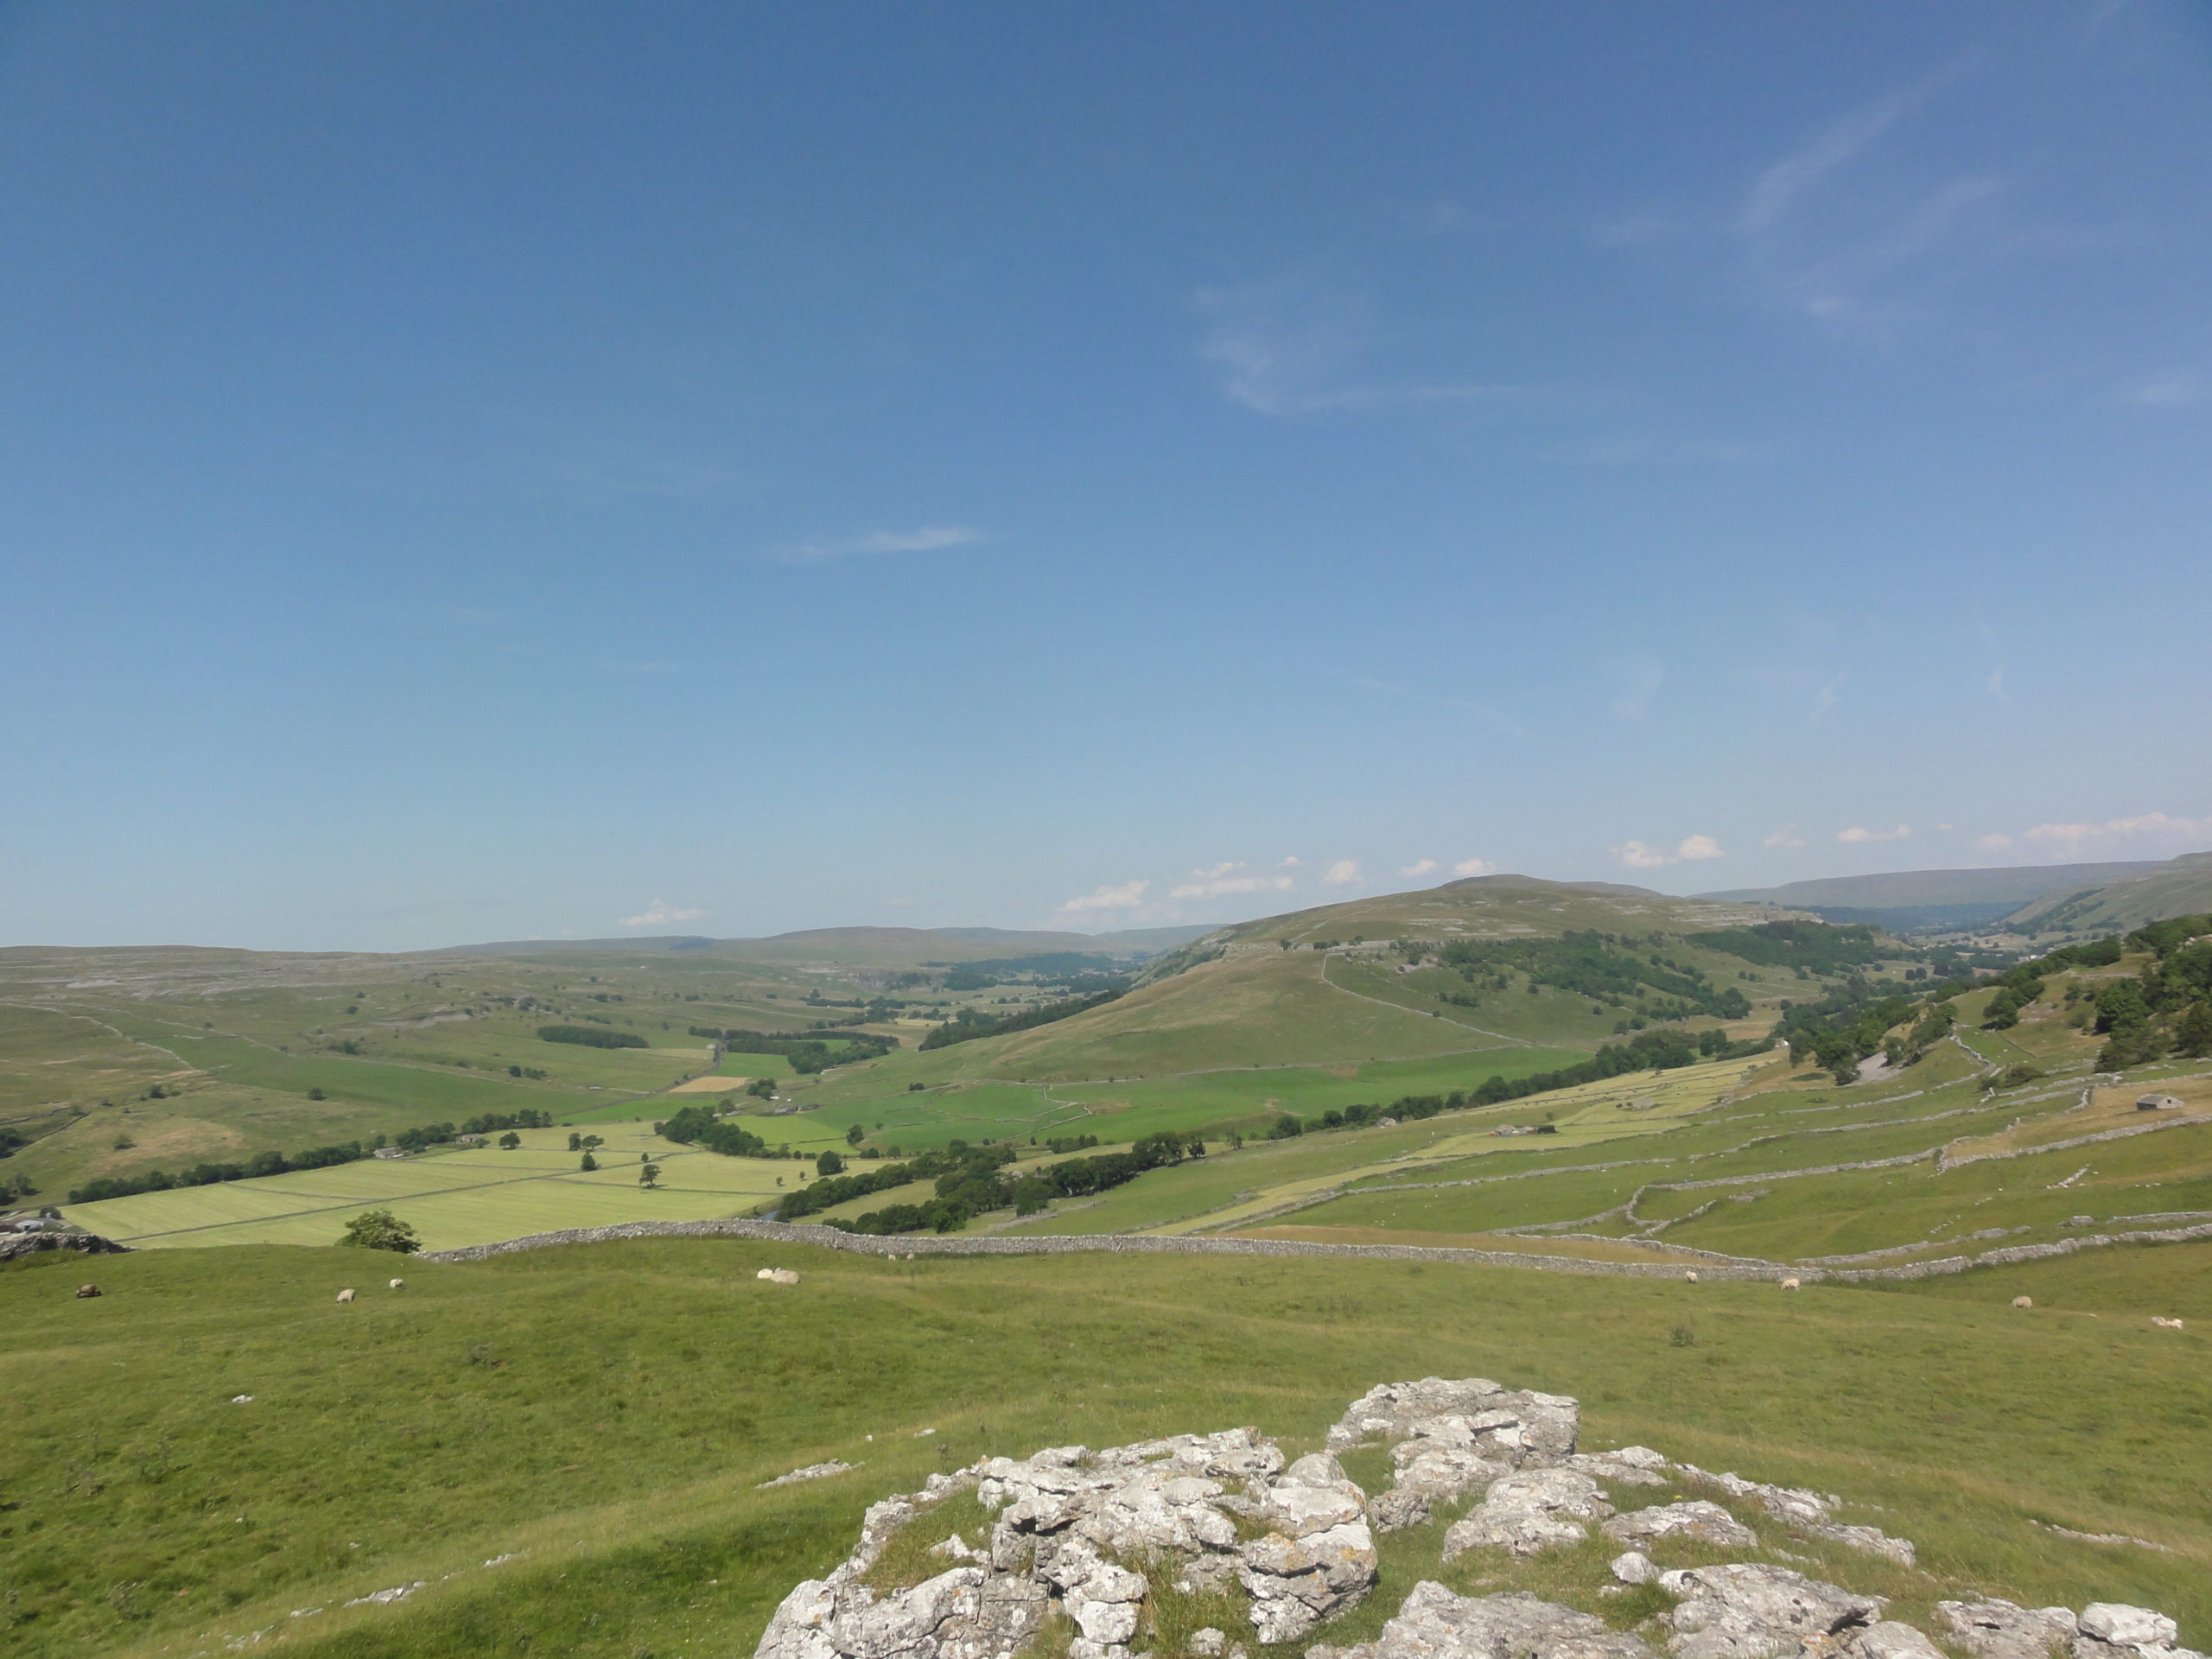 Looking towards Littondale